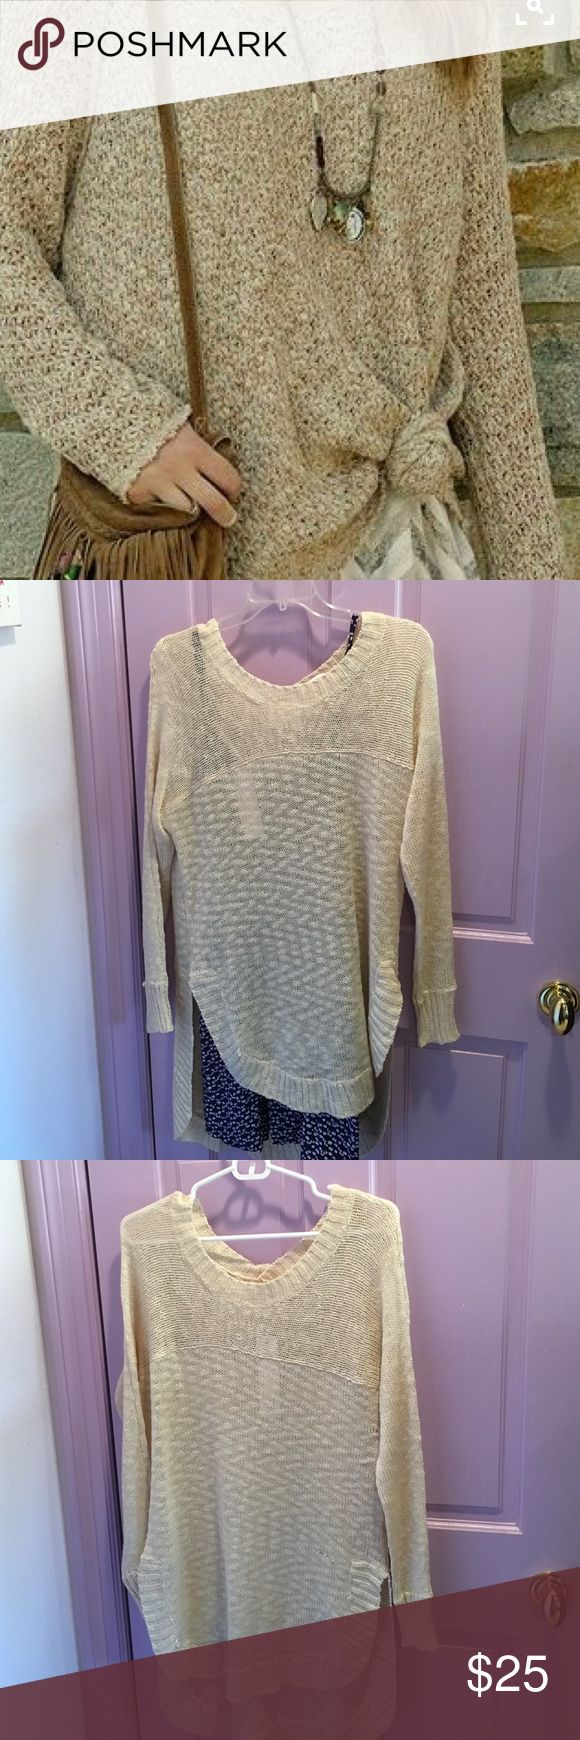 "Loose Knit Oversized Hi Low Sweater BNWT This sweater is perfect for layering! It's loose Knit lets what's underneath shine through, and its Hi low shape makes it perfect for dresses or leggings. Size M. 26"" long in front, 31"" long in back  17"" across the shoulder laying flat. BNWT, never worn, in perfect condition. Millau Tops Tunics"